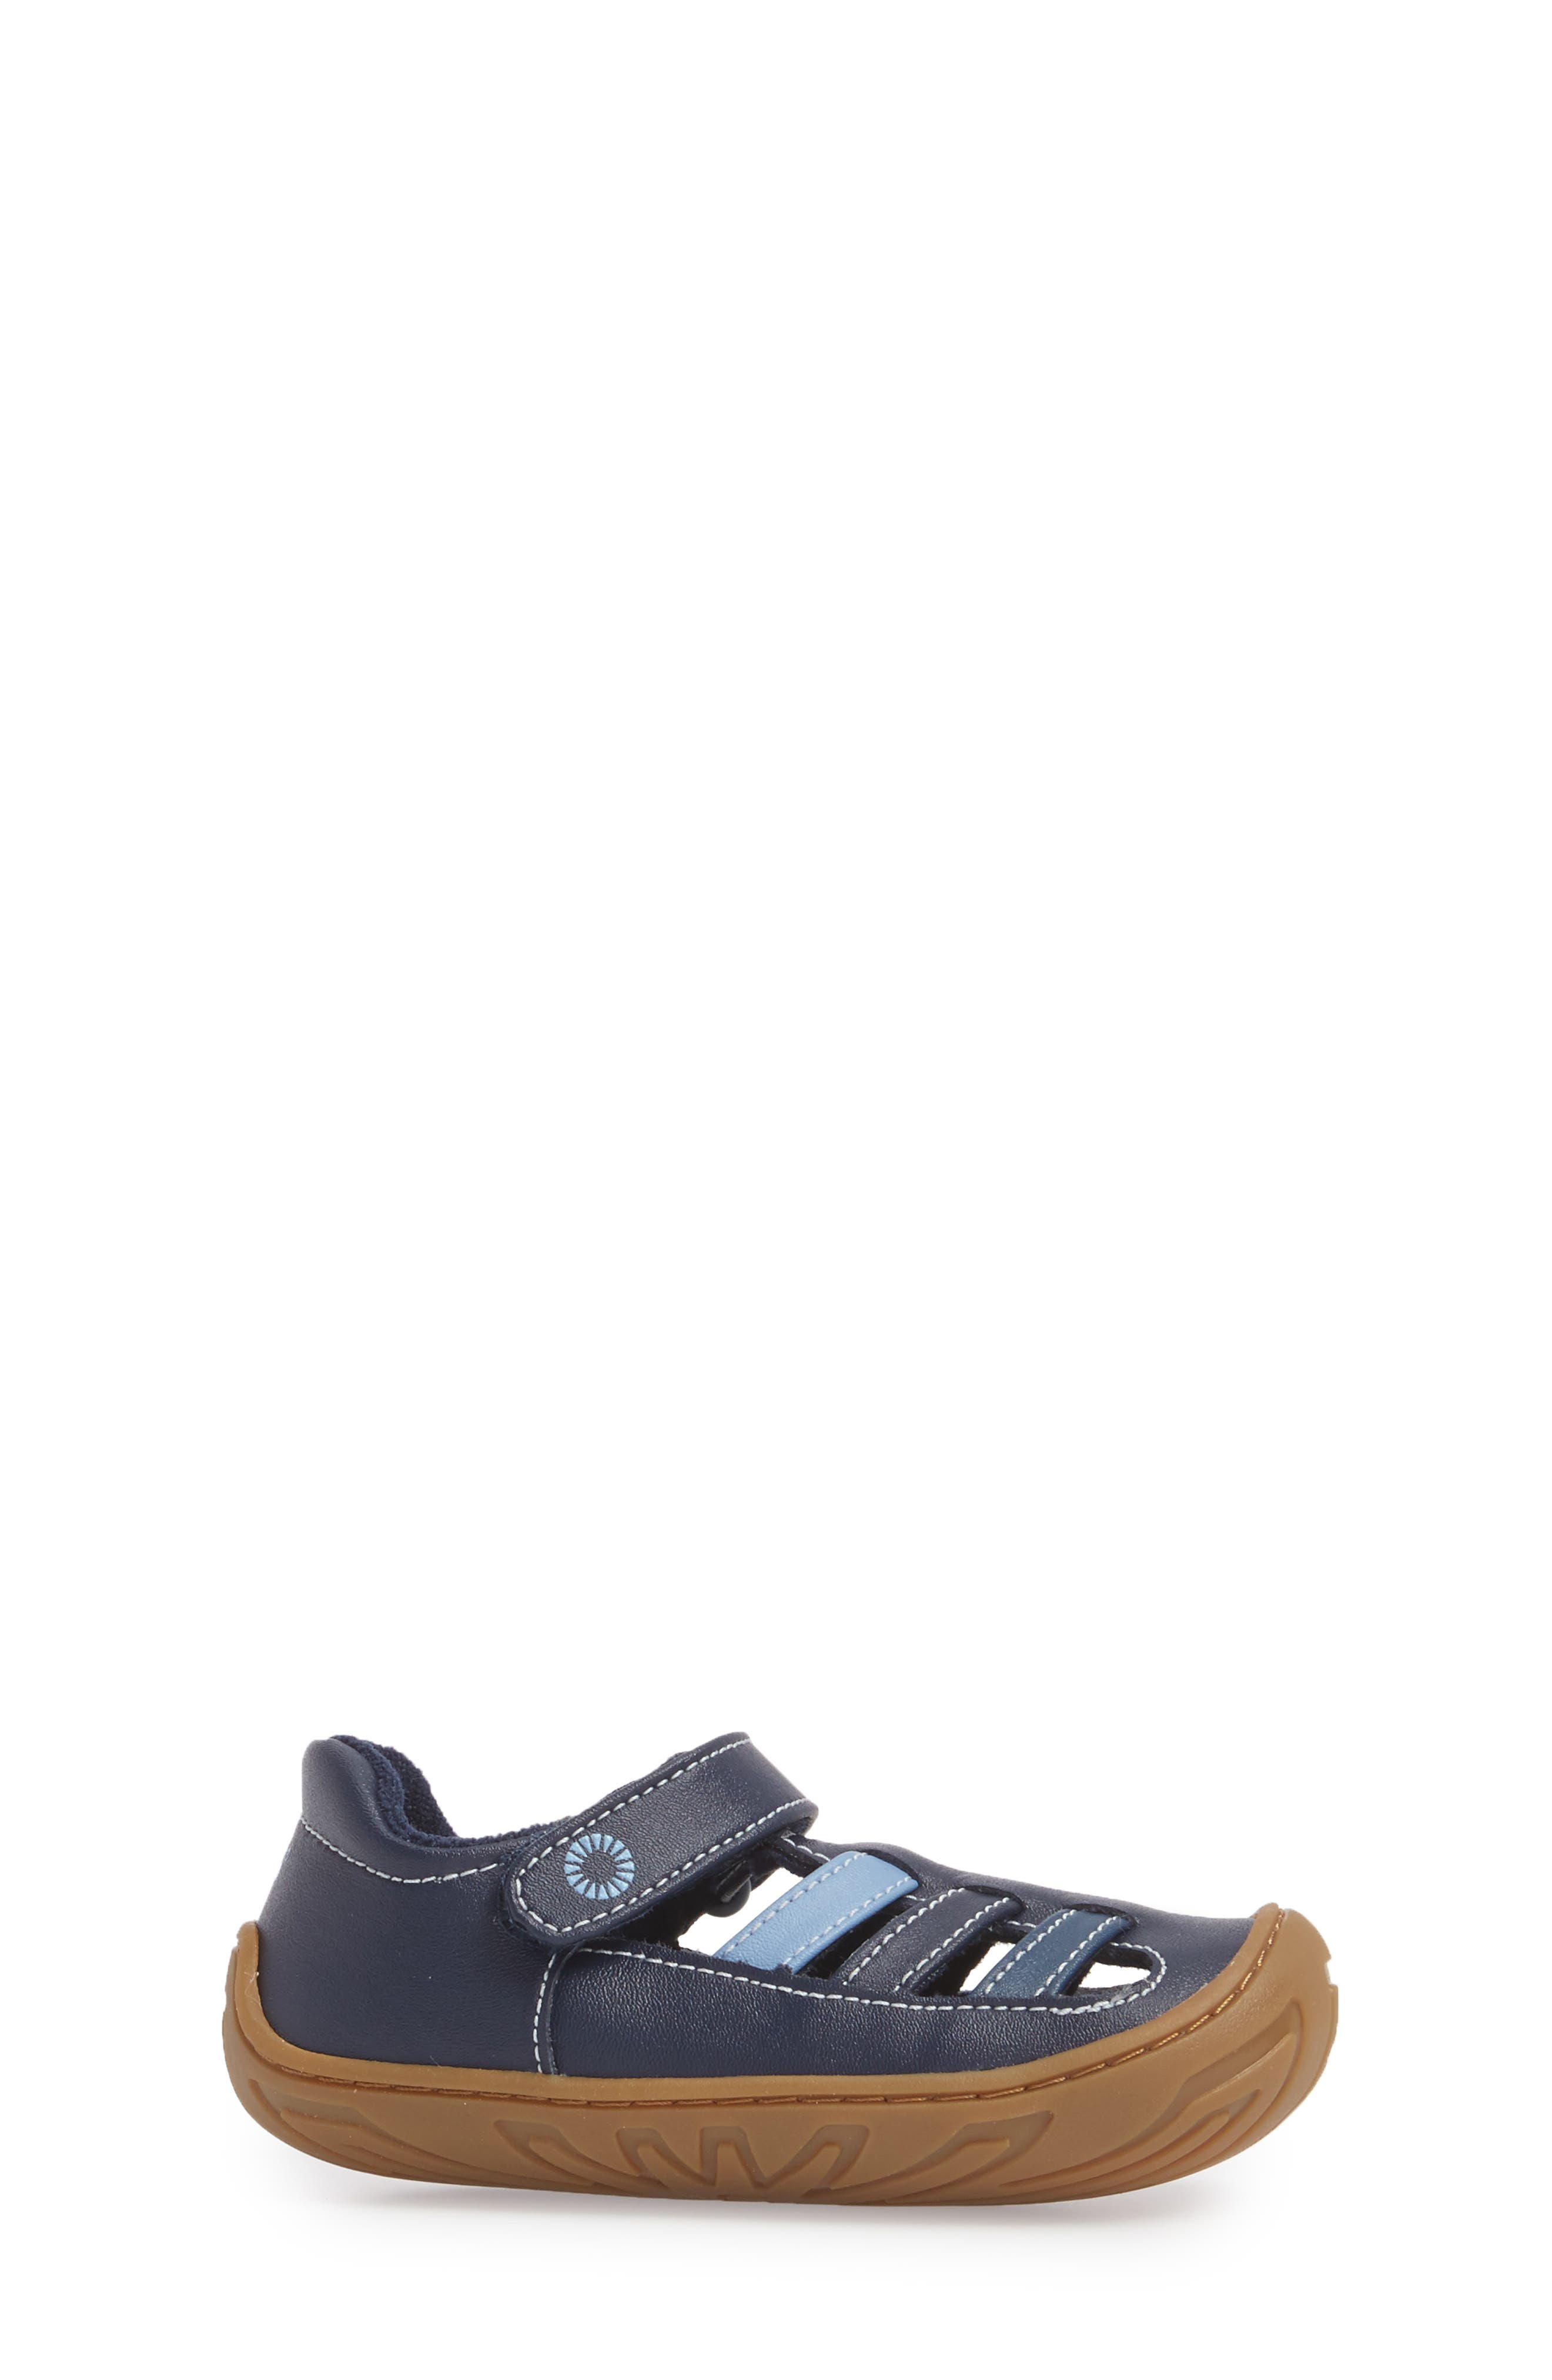 Santore Sandal,                             Alternate thumbnail 3, color,                             NAVY